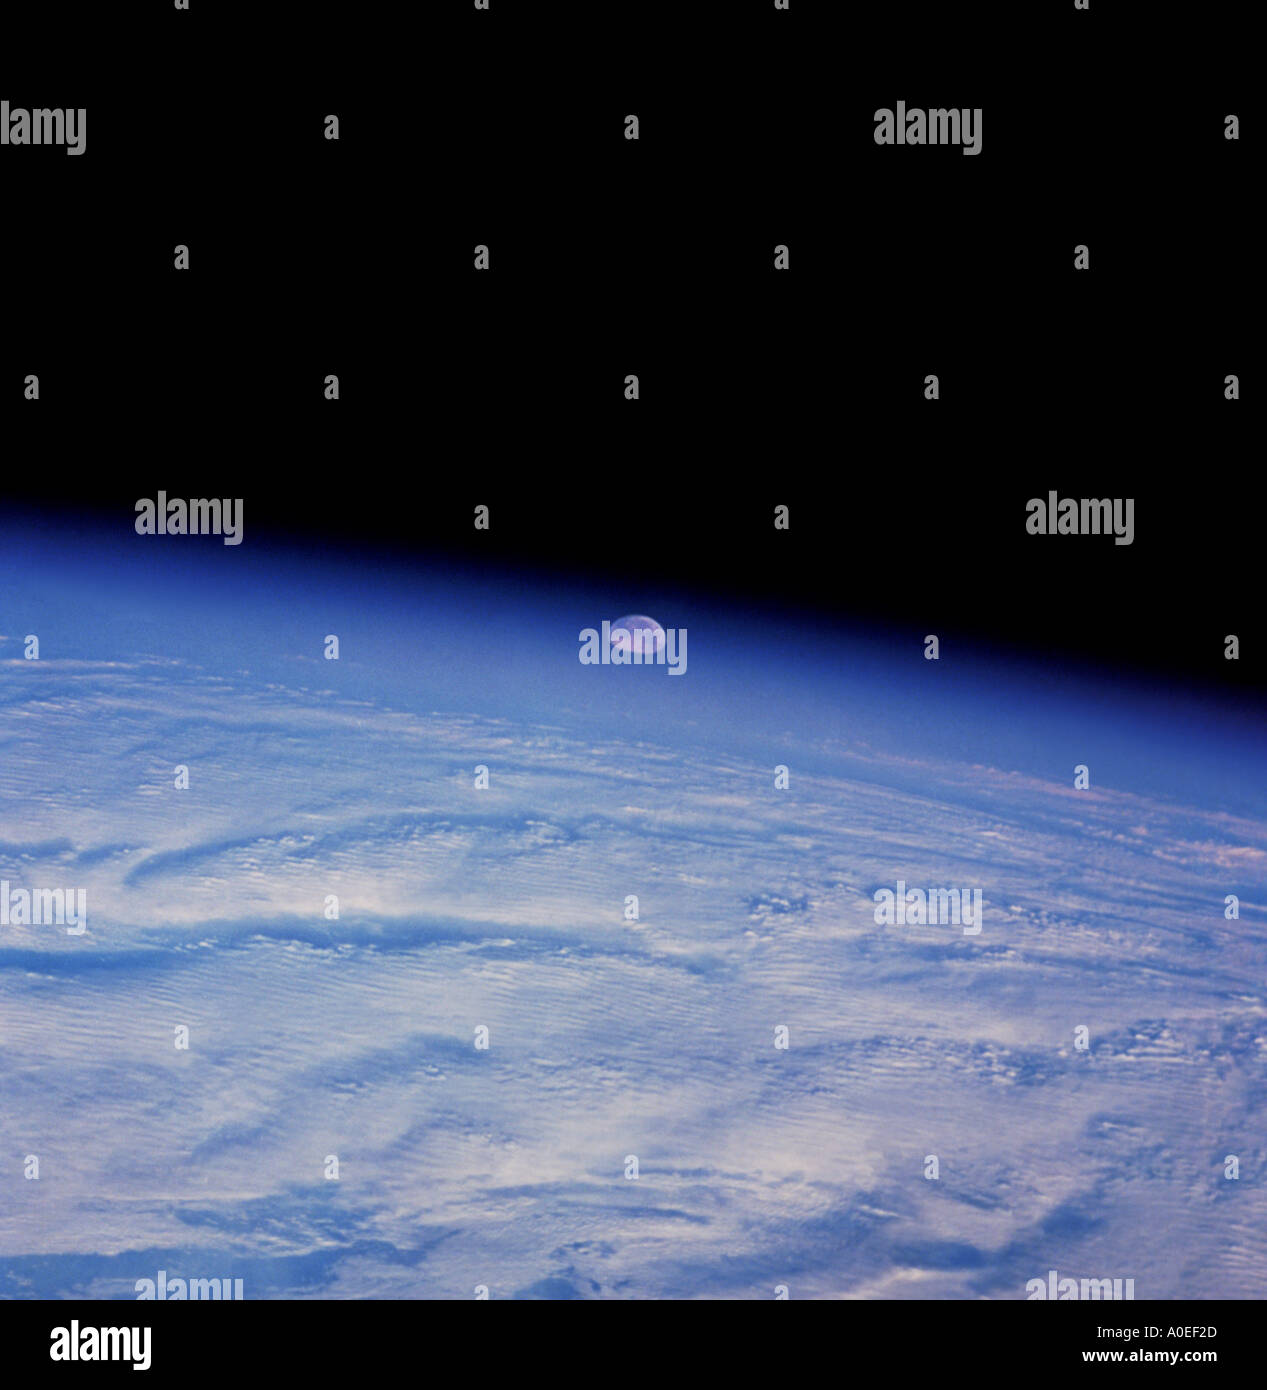 Moonrise from space - Stock Image